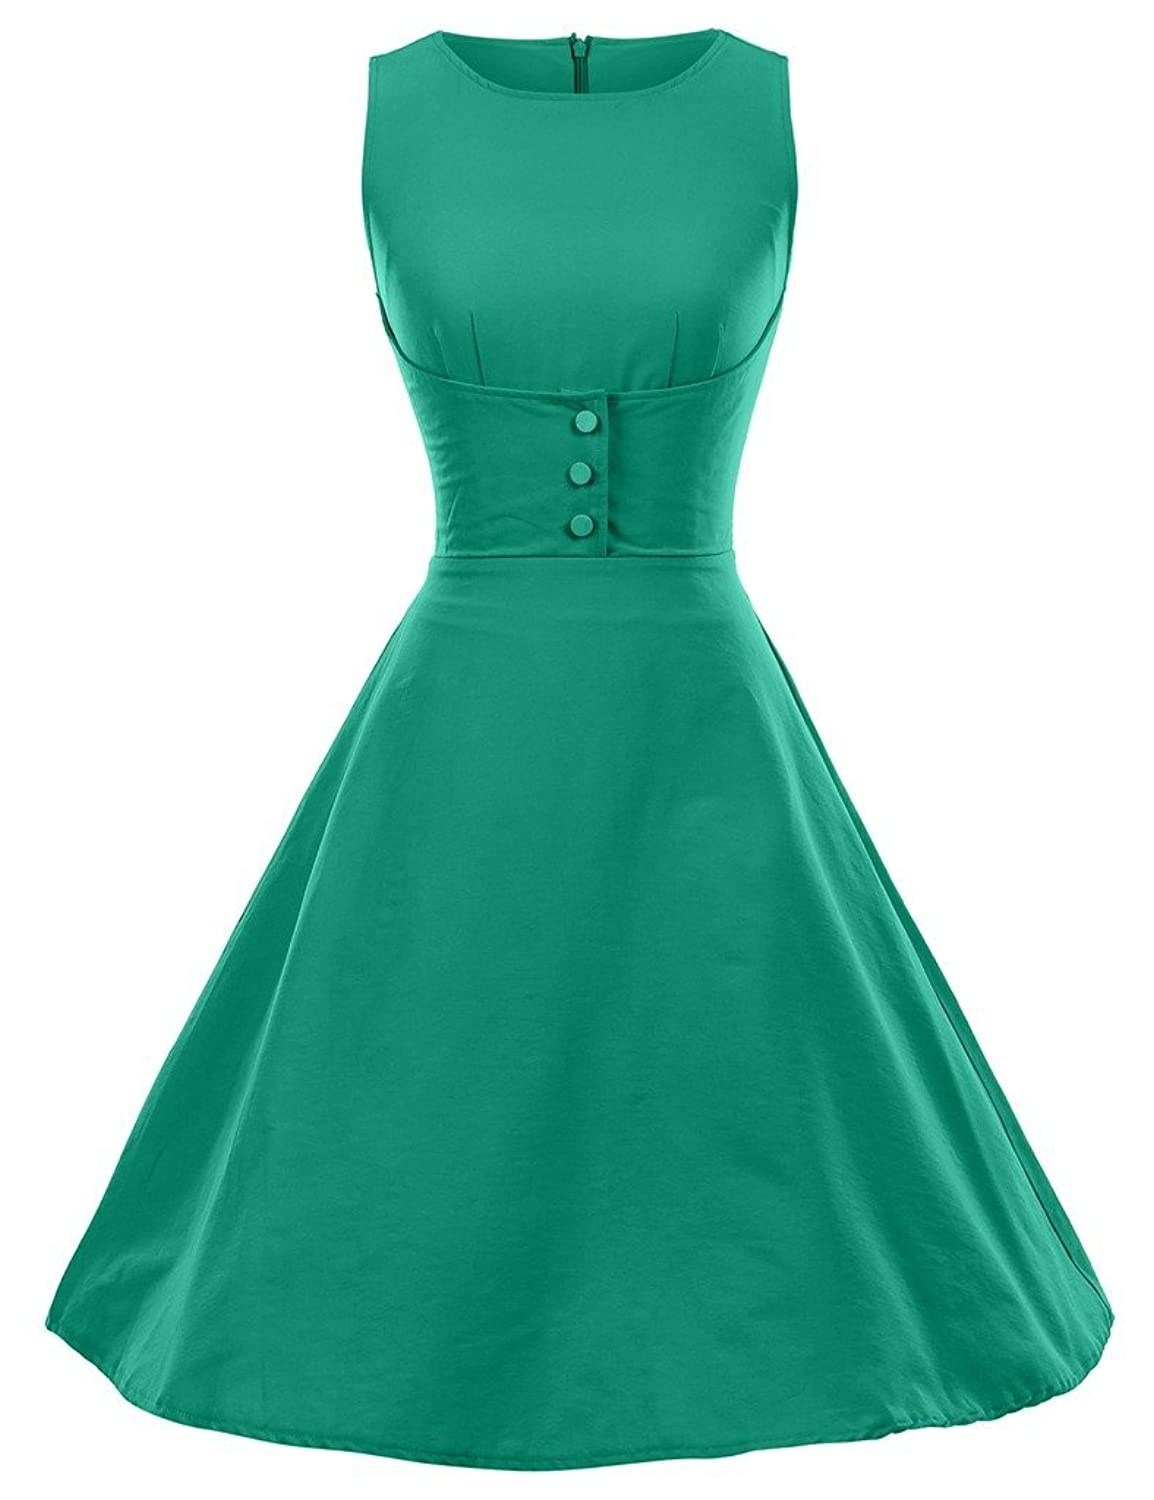 GownTown 1950s Vintage Dresses O-neck sleeveless Dresses Swing Stretchy Dresses